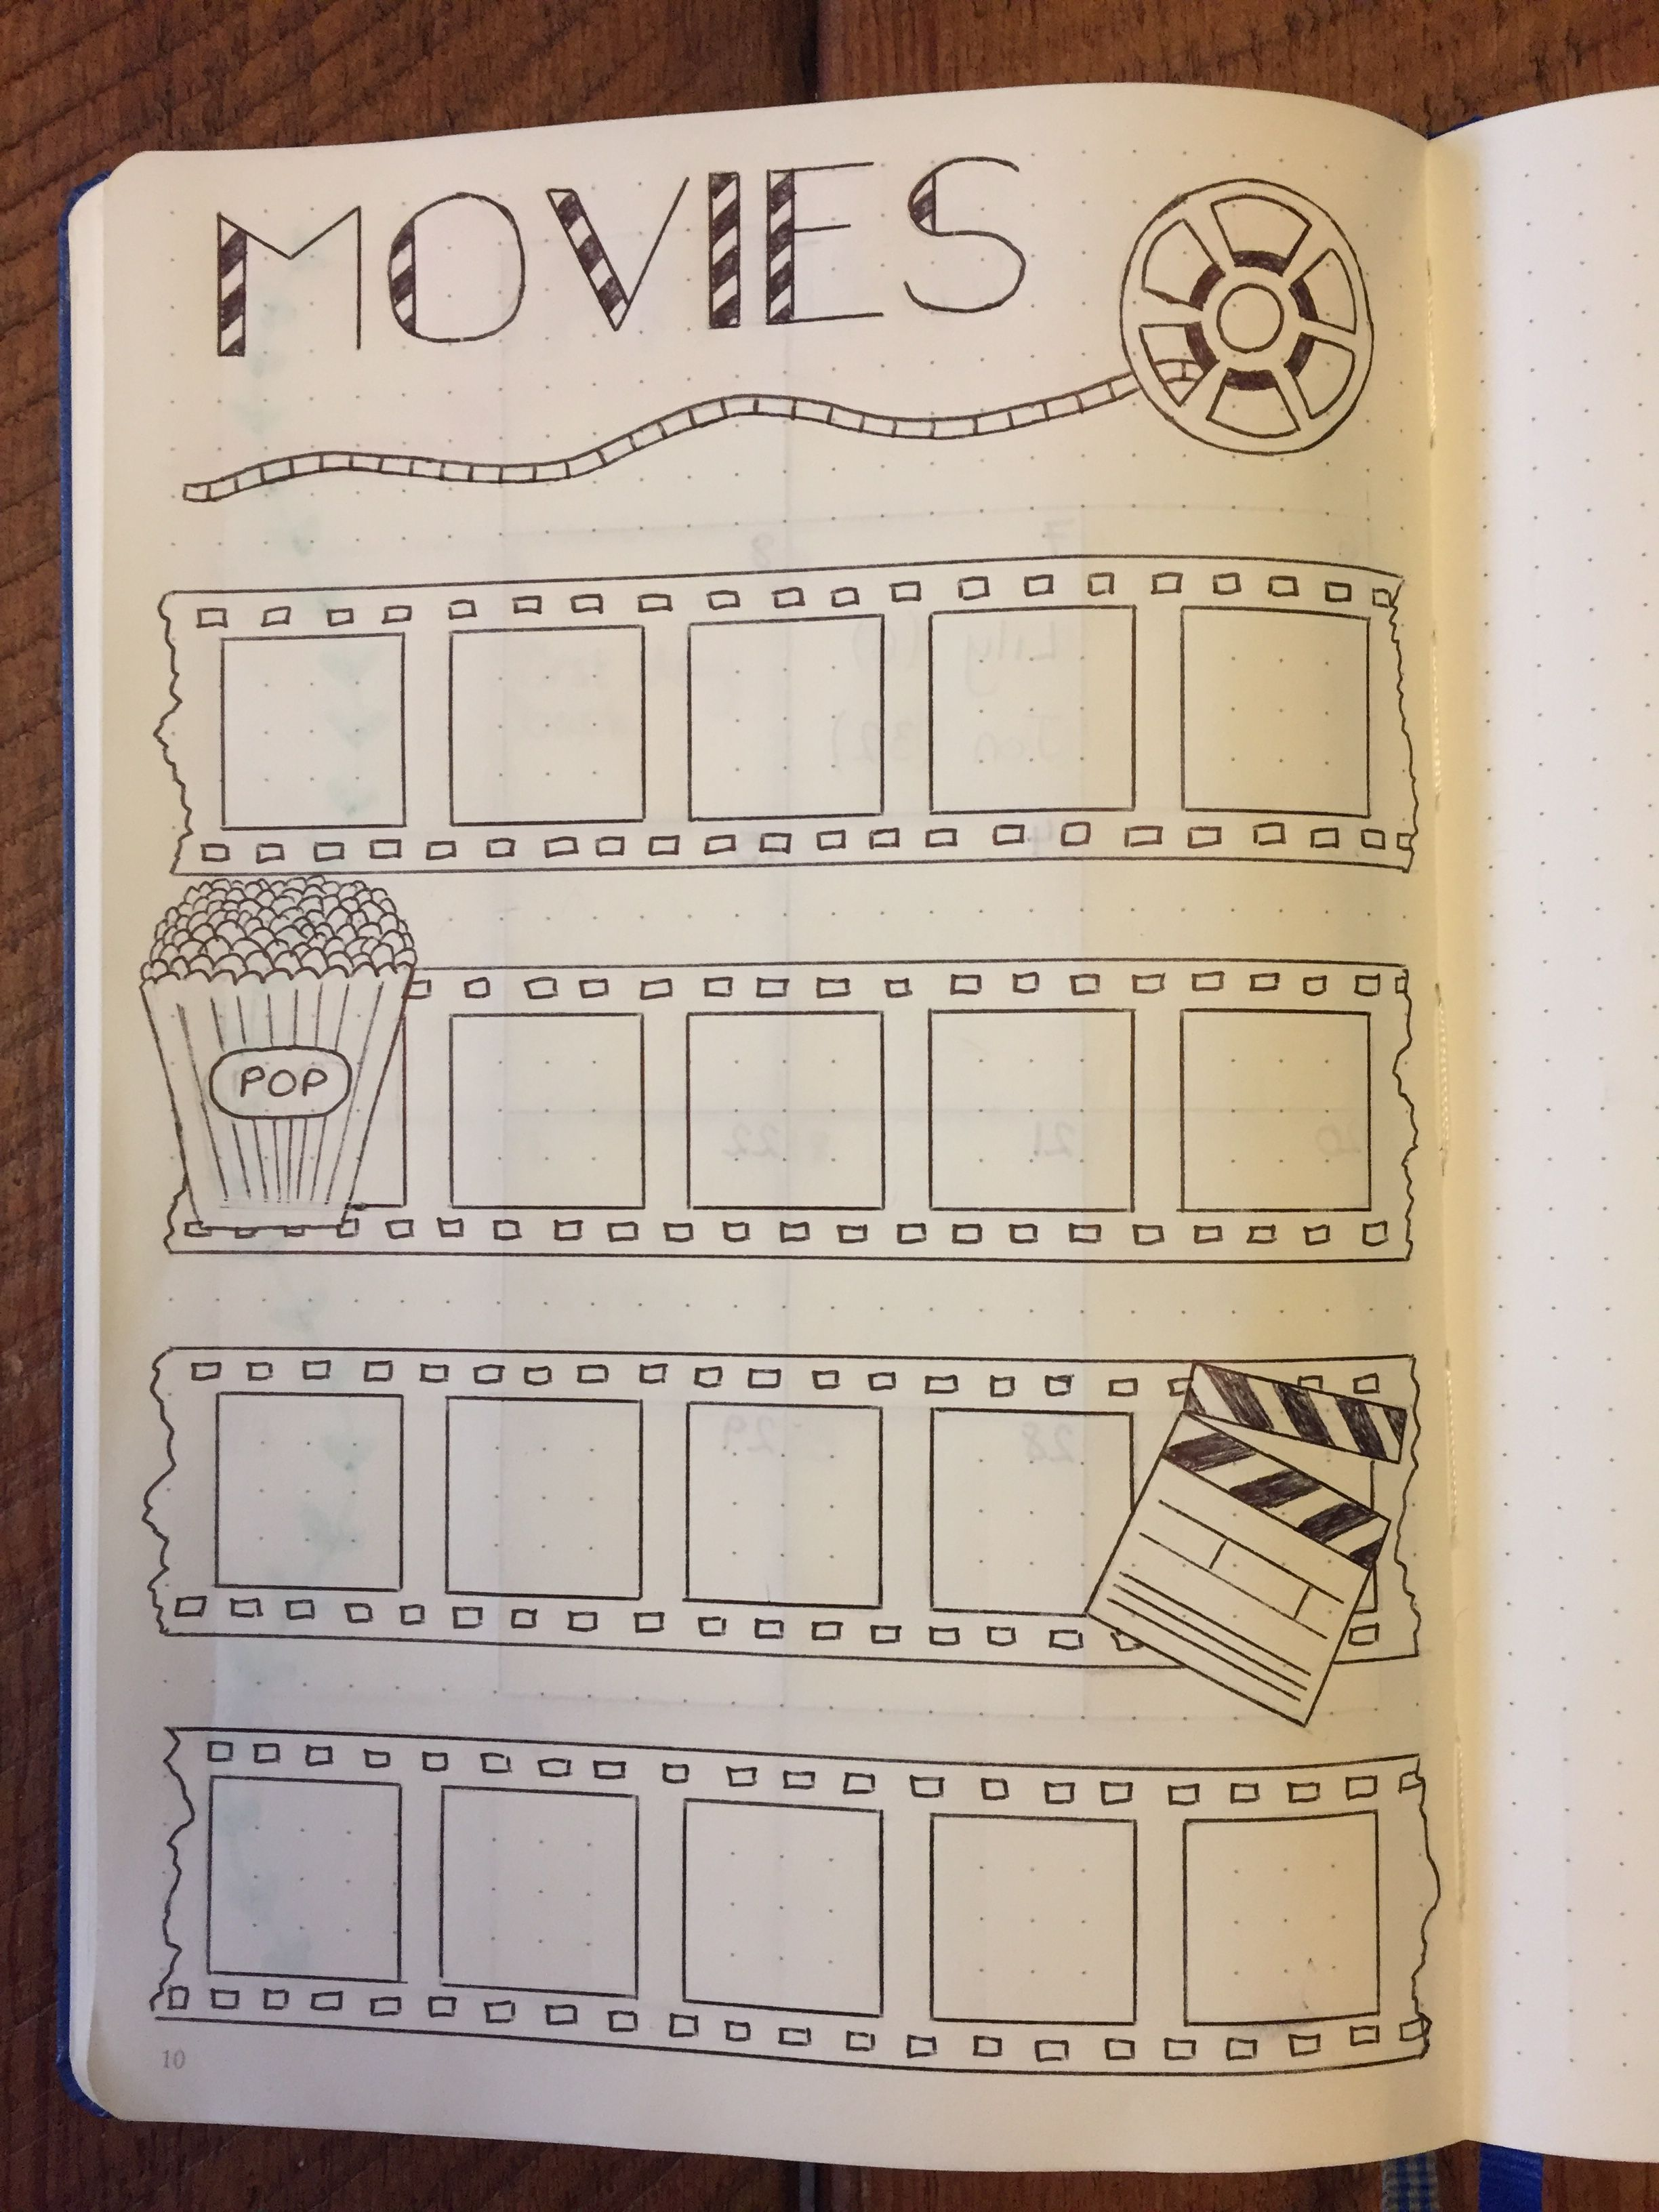 My movies page. Bullet journal. BuJo page.